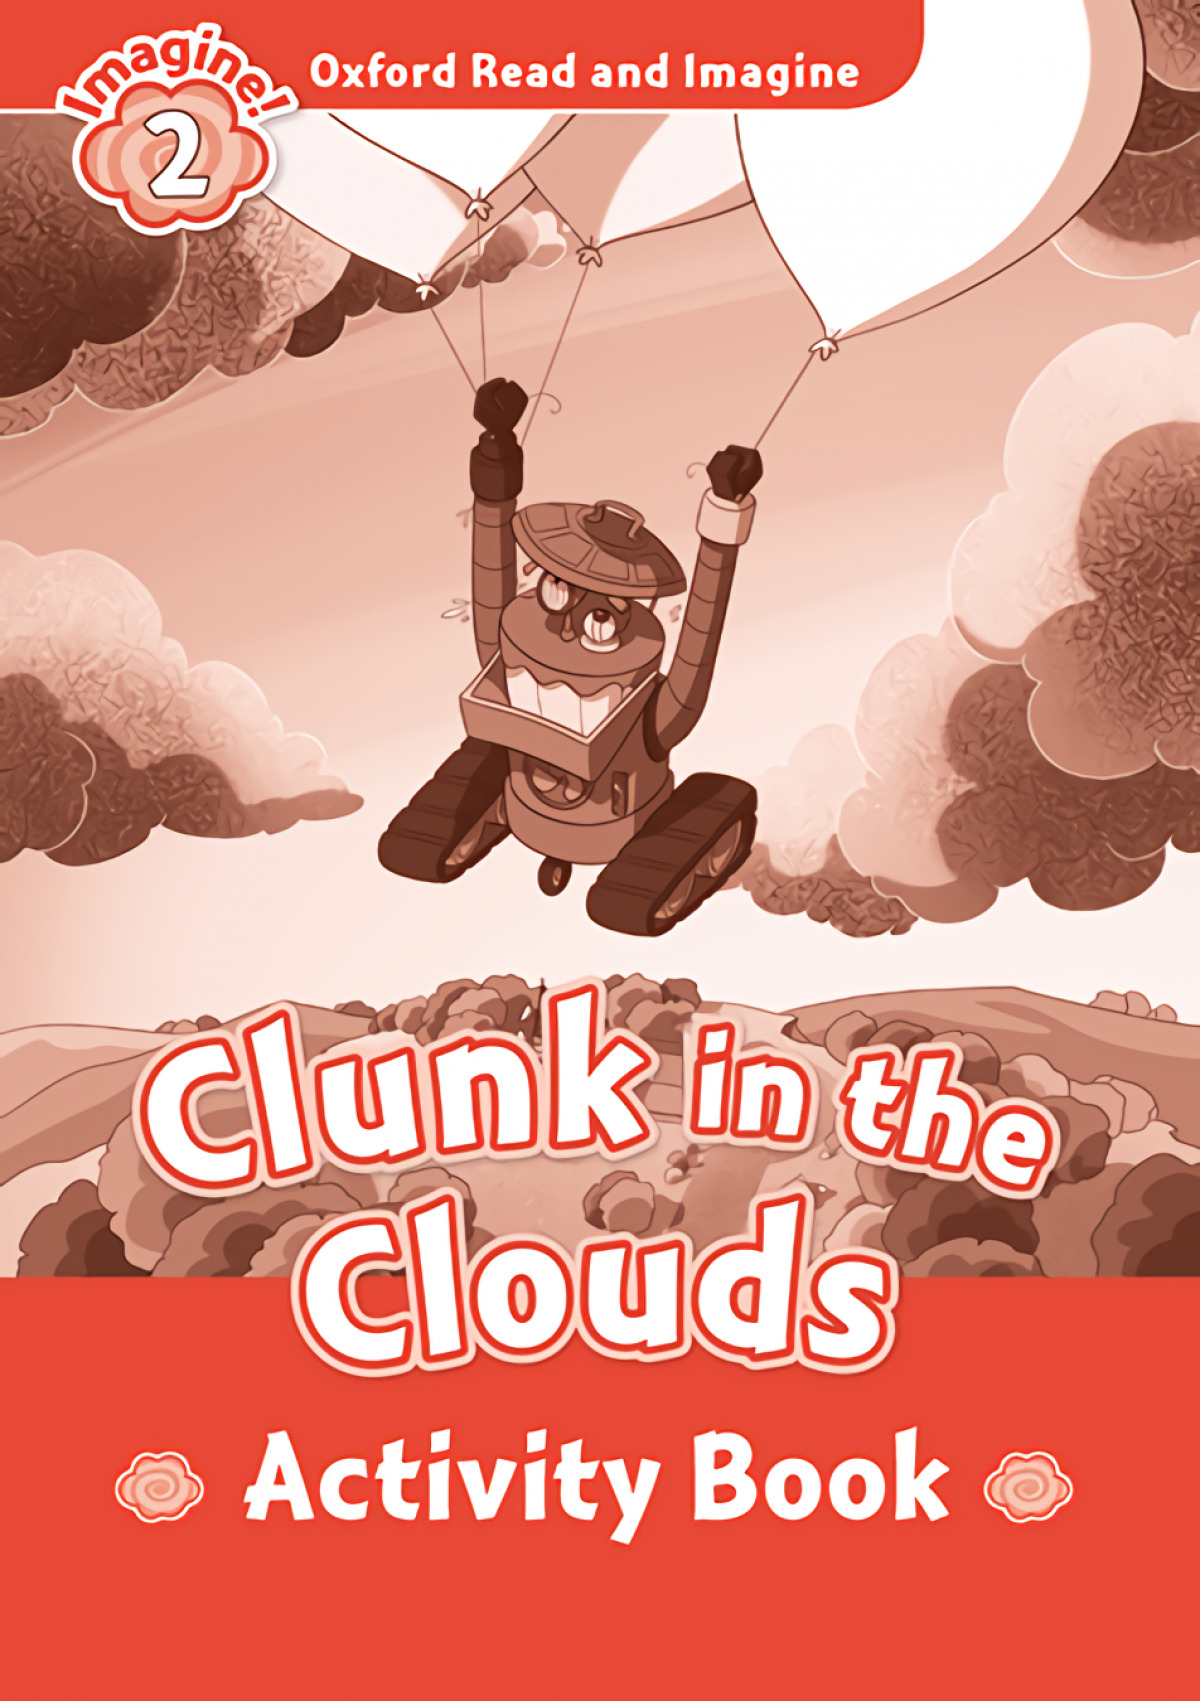 CLUNK IN THE CLOUDS ACTIVITY